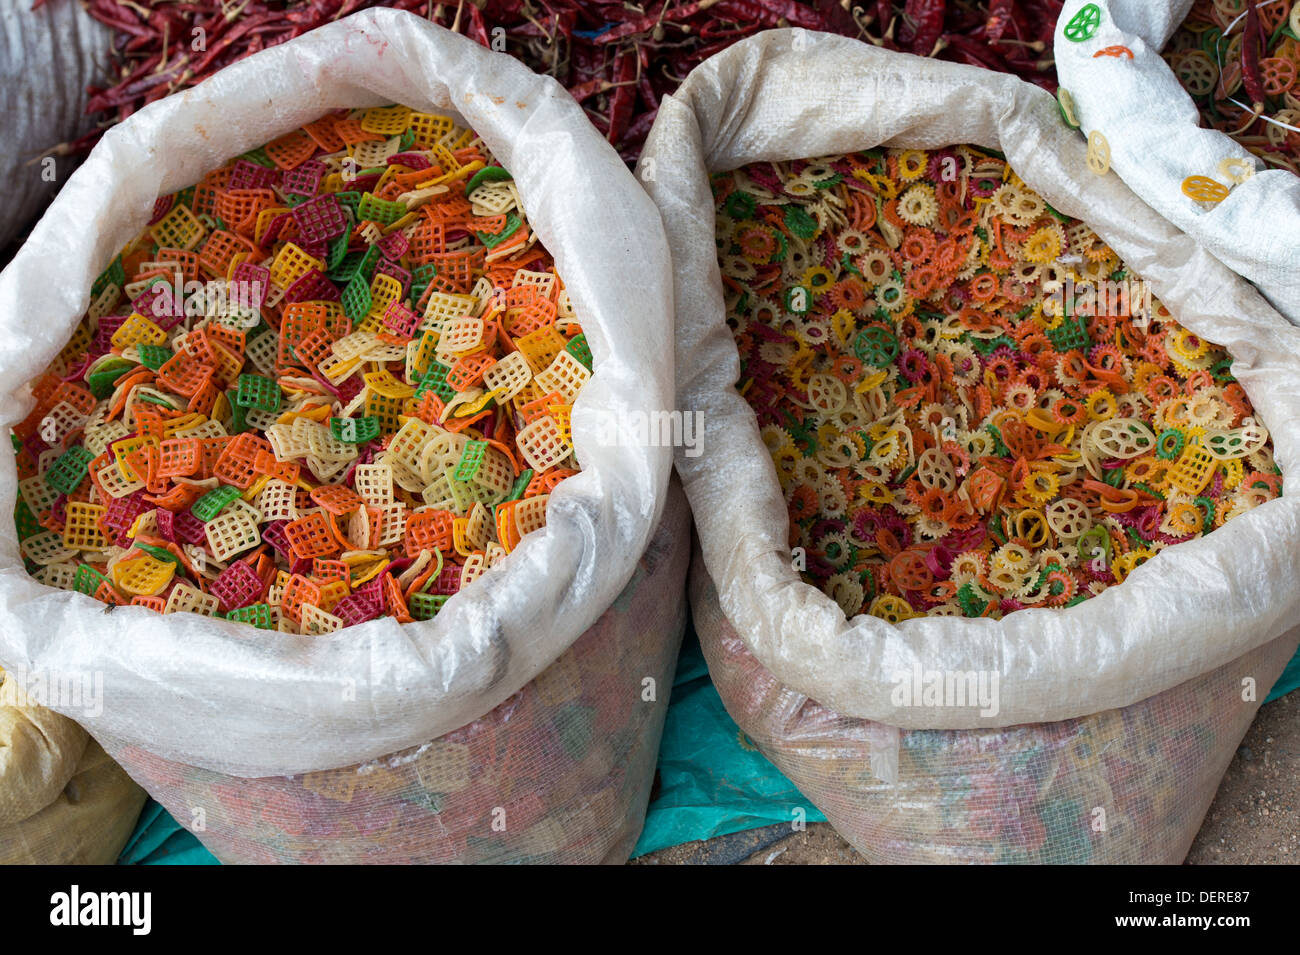 Indian snack food FAR FAR, sold dry in bulk from sacks at an Indian market - Stock Image